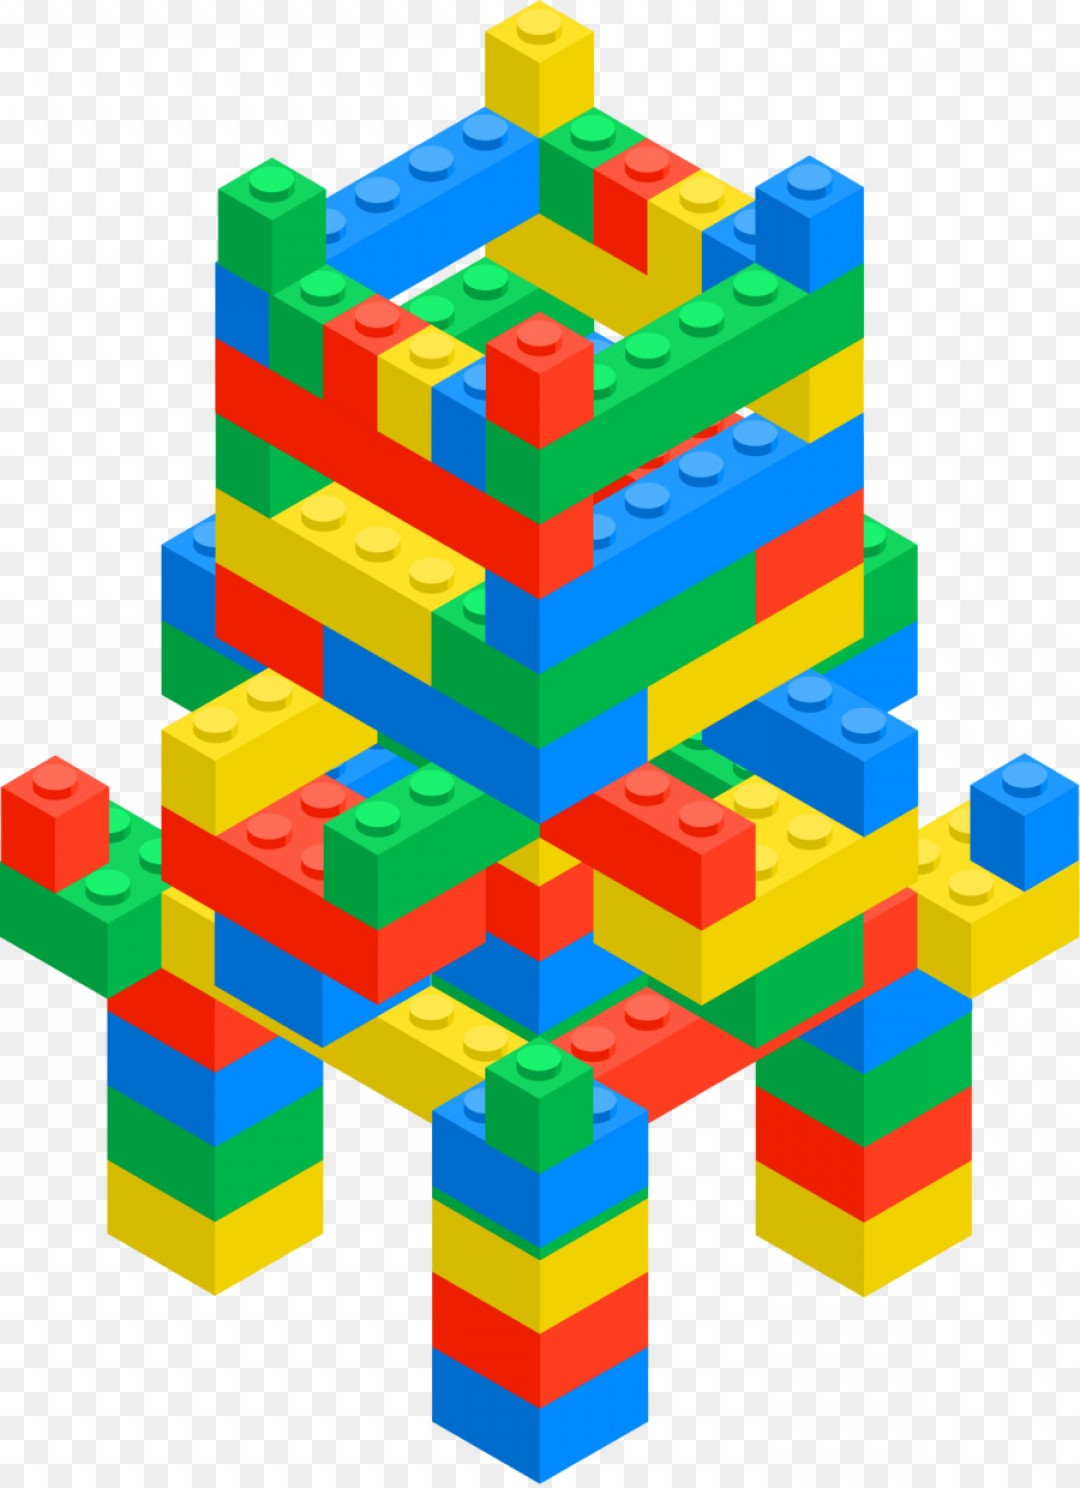 Vector Block Play: Png Lego Toy Block Computer File Vector Handwriting Le